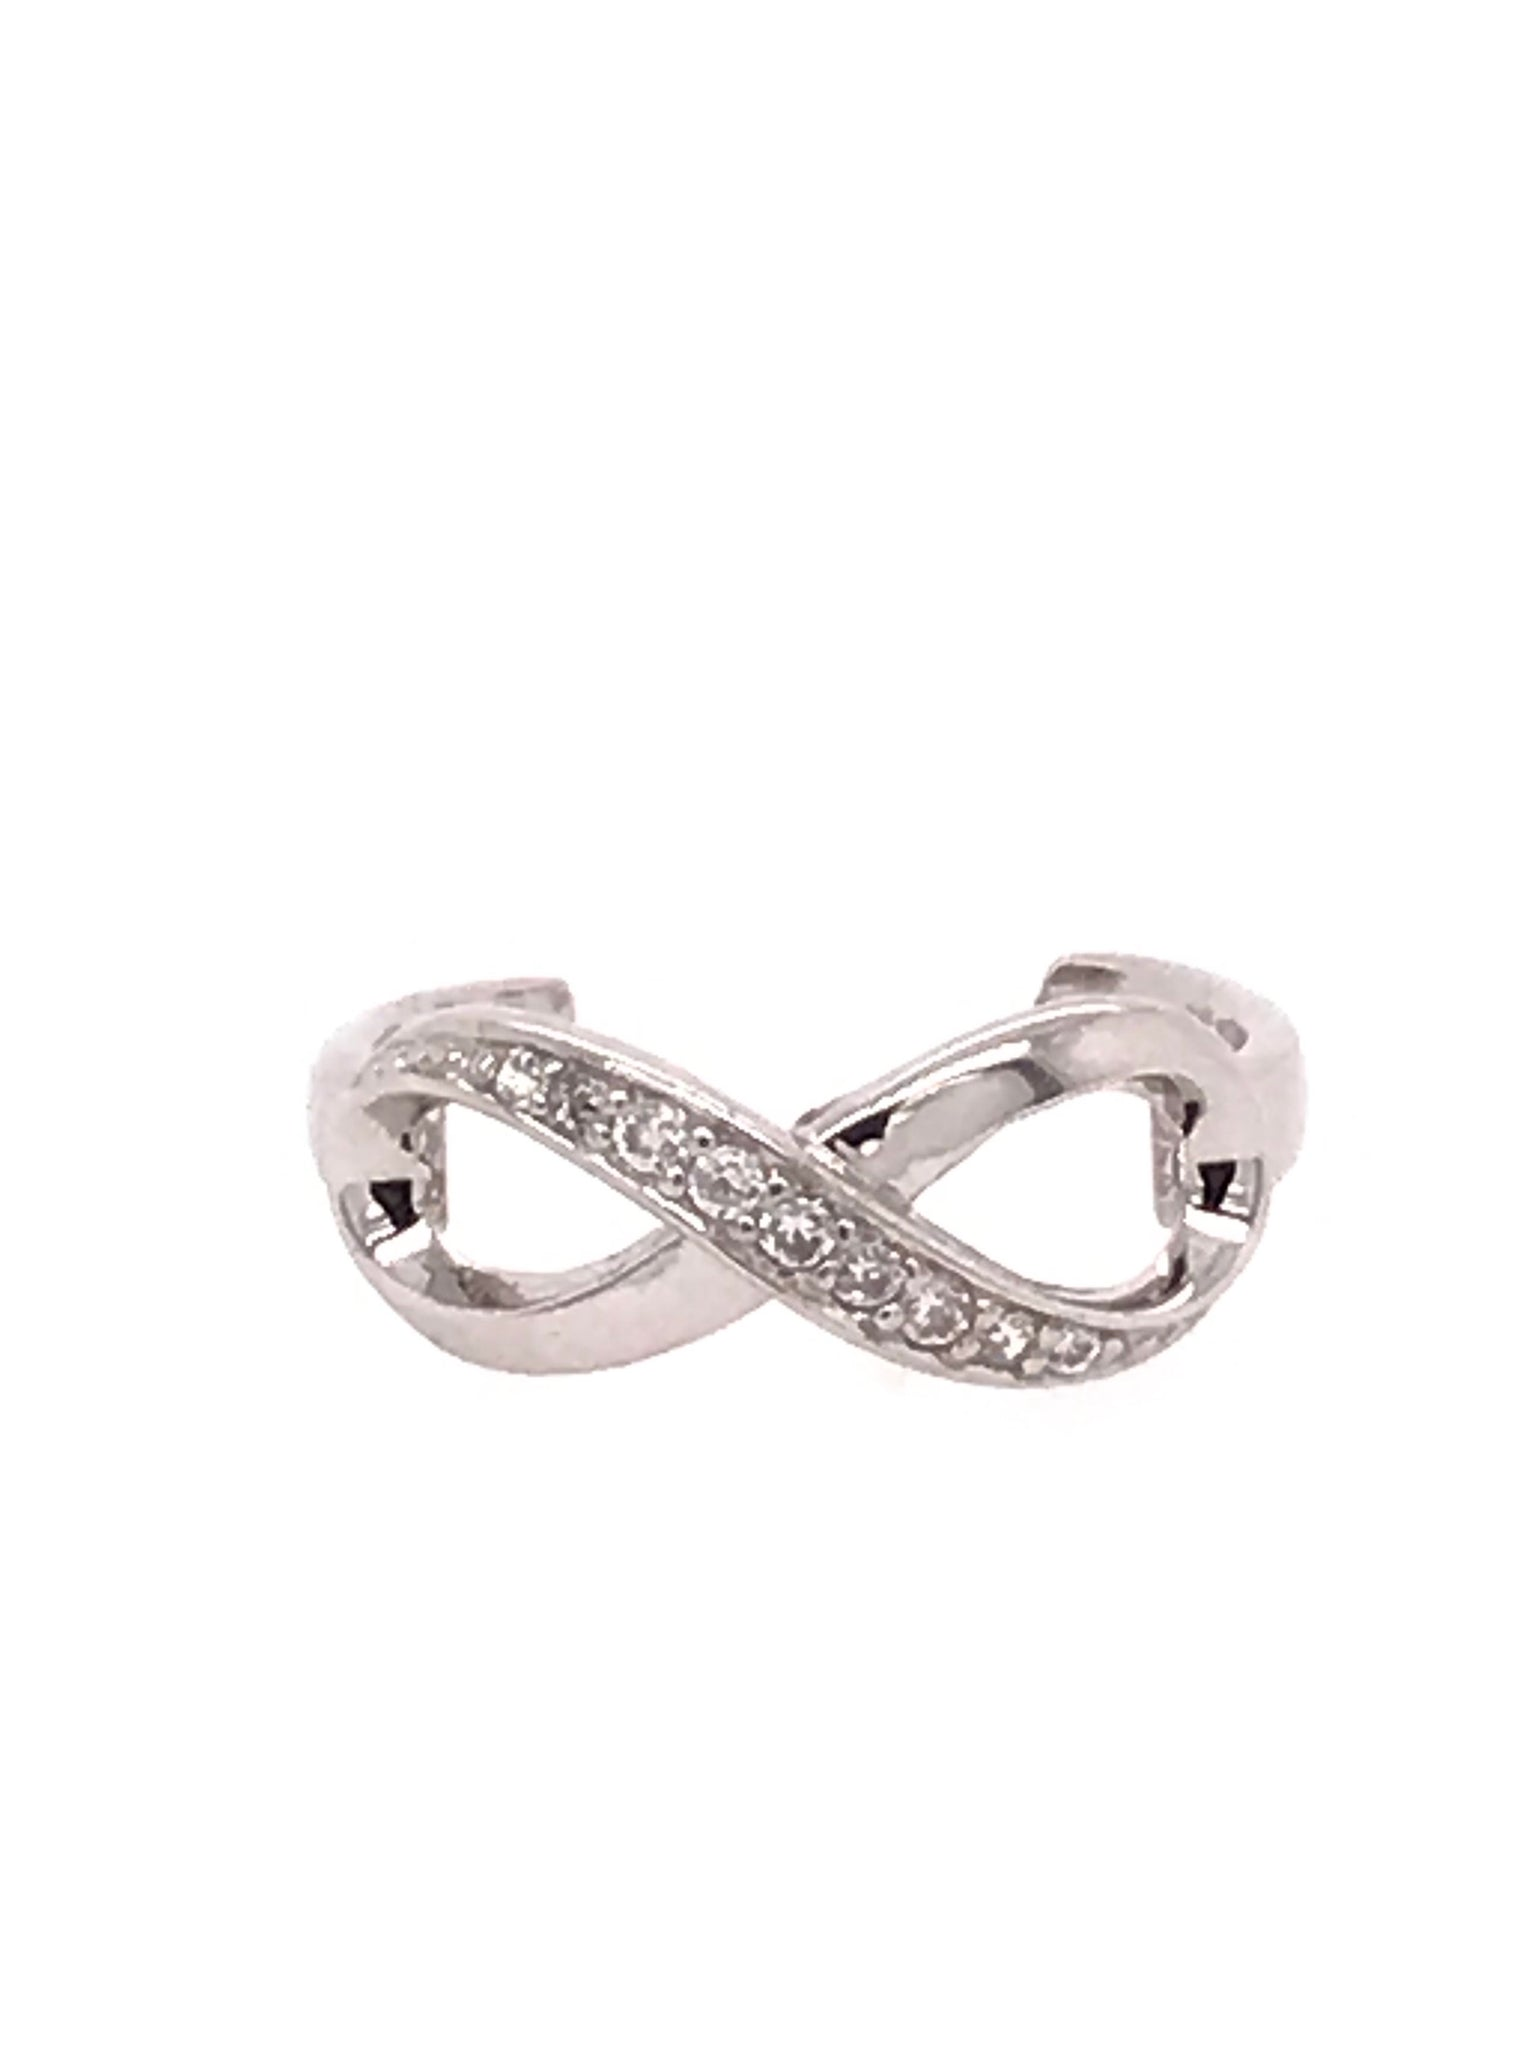 Infinity Adjustable Toe Ring